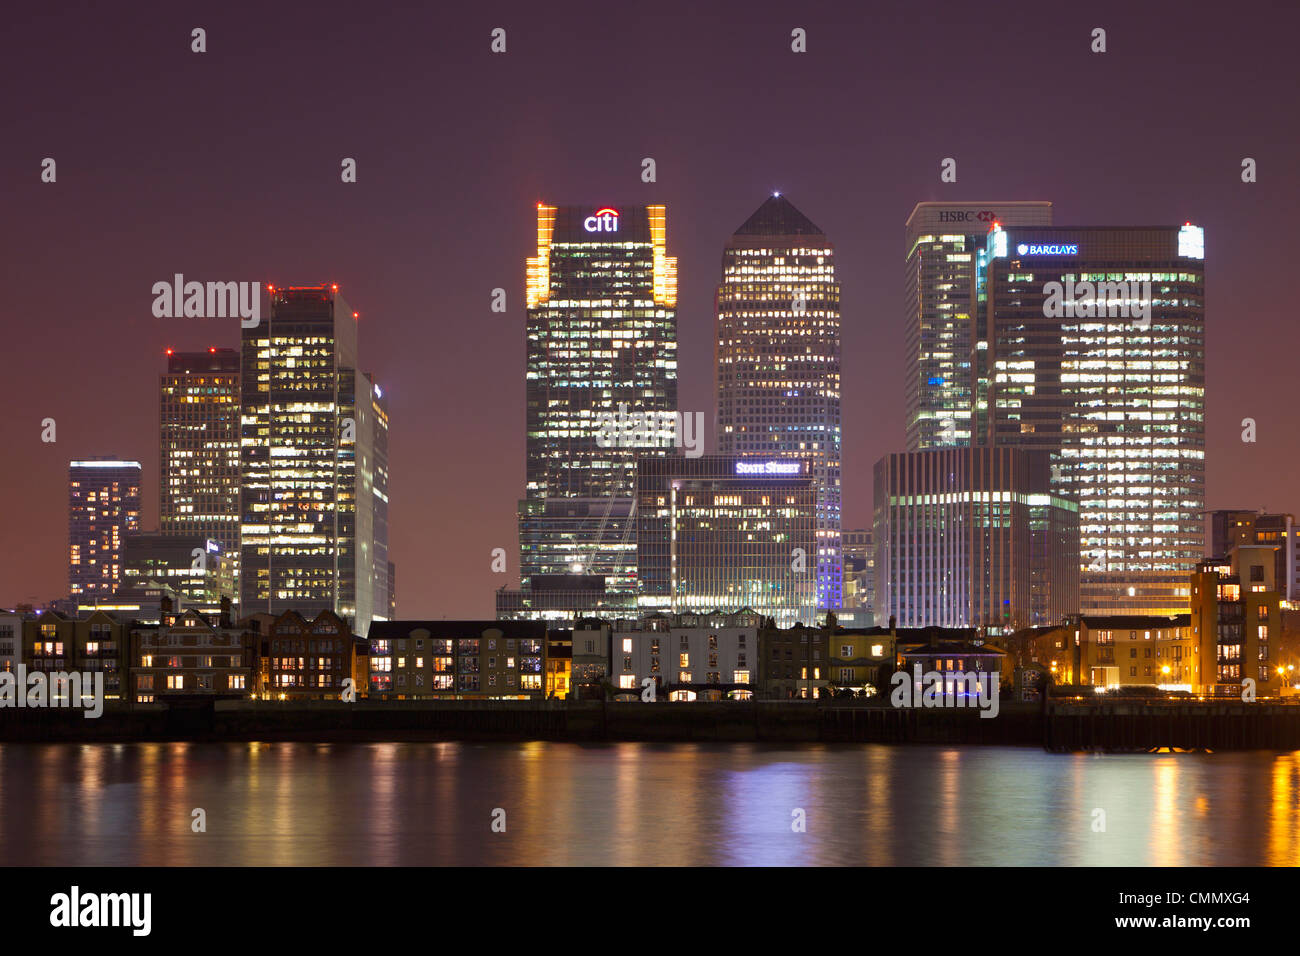 Canary Wharf financial district viewed over the river Thames, London, UK - Stock Image